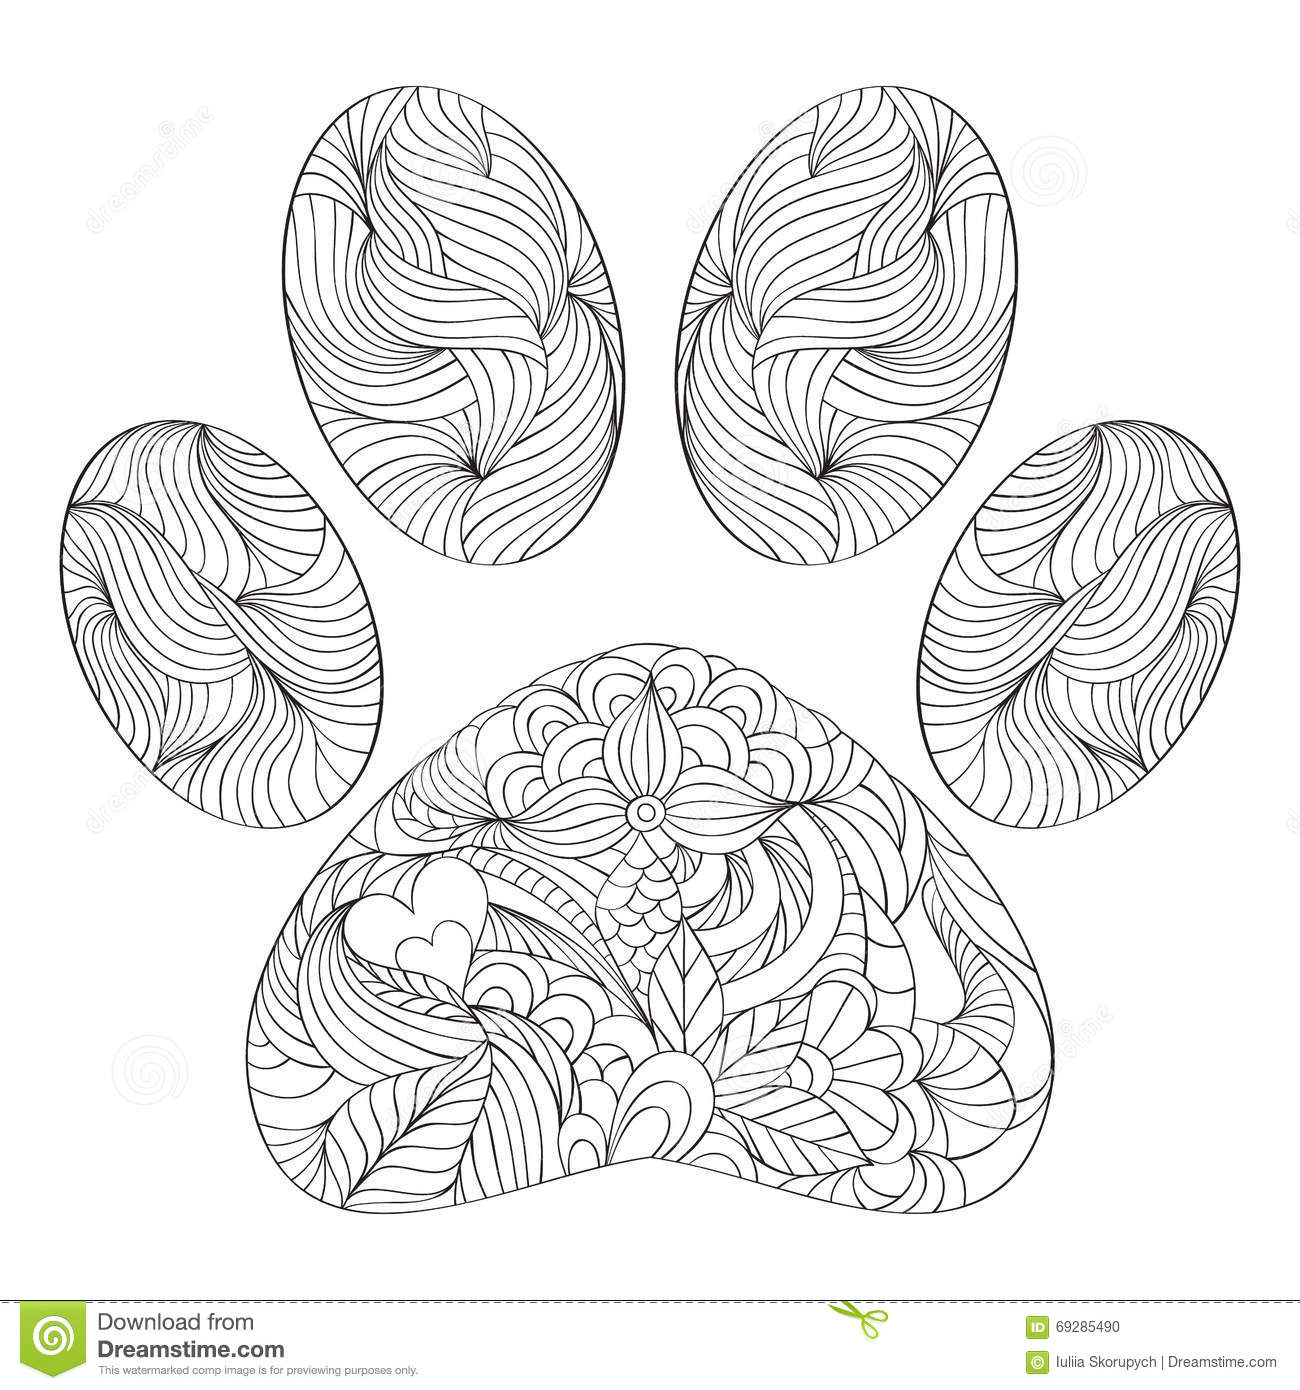 paw prints coloring pages bear paw coloring page kerra pages prints paw coloring